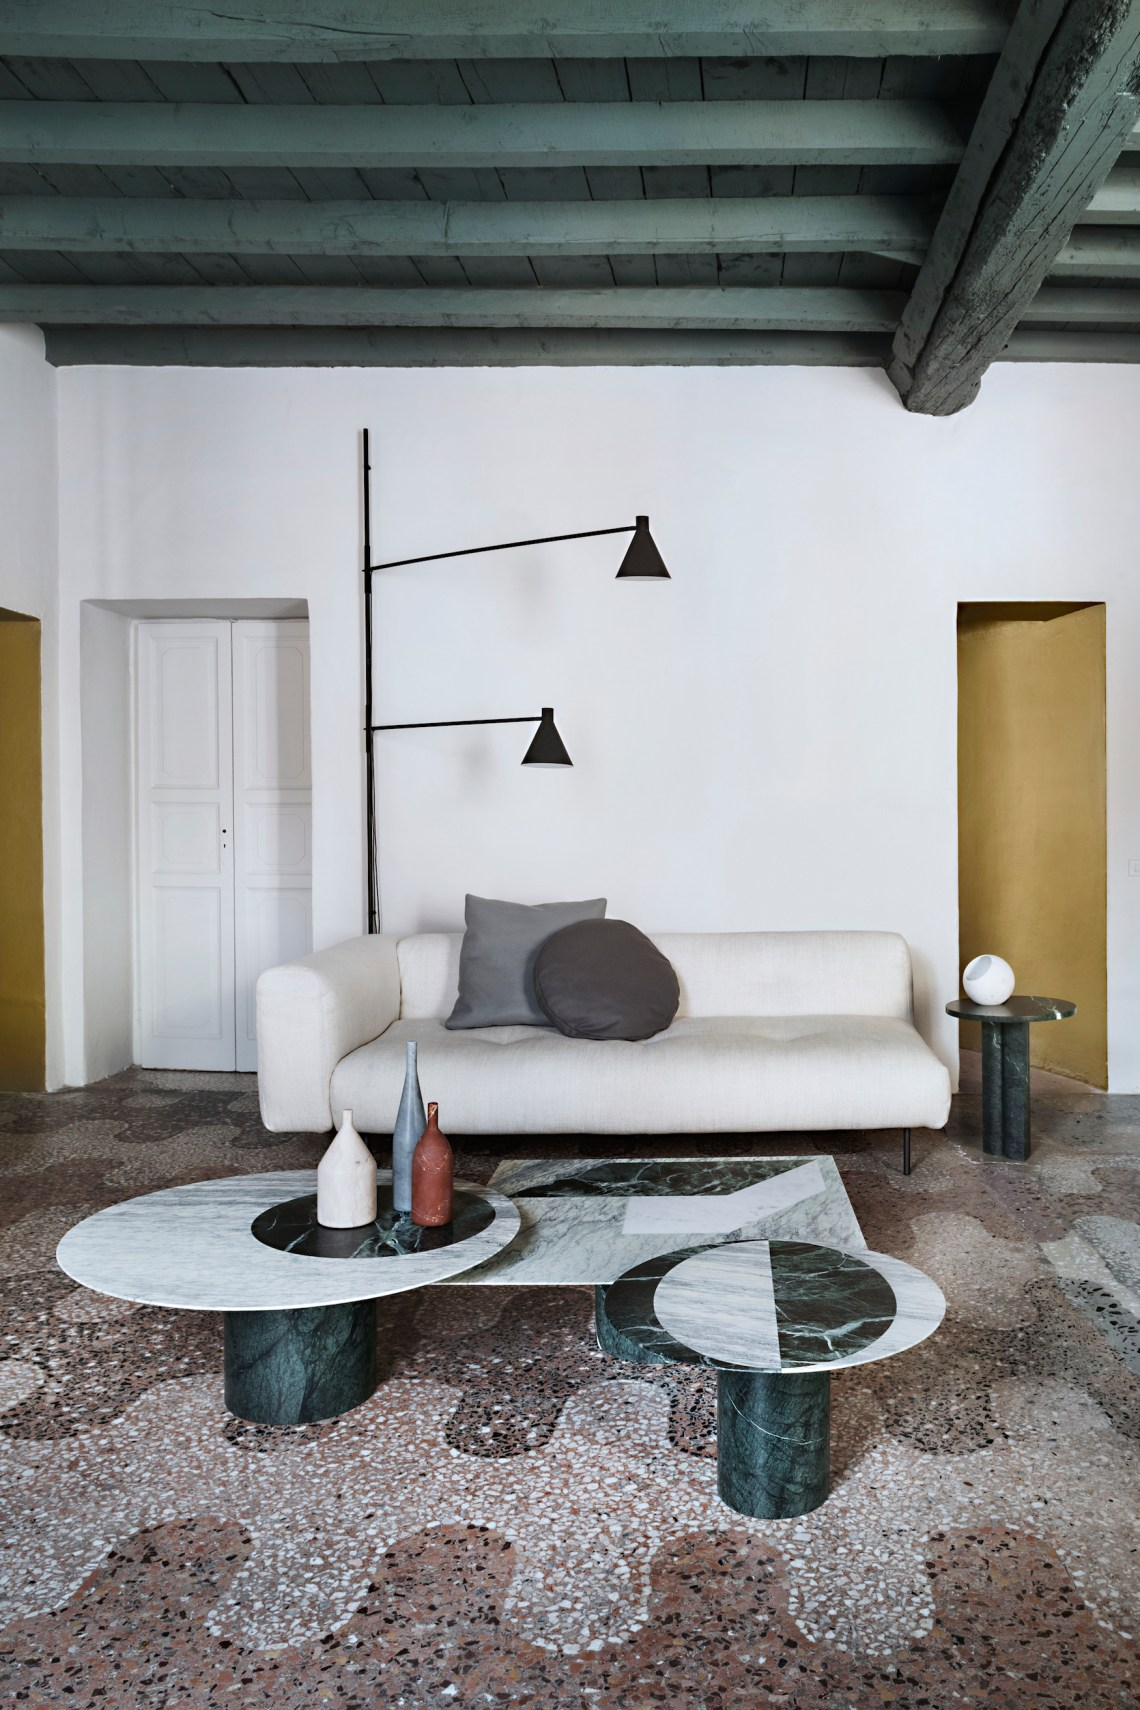 Marble play at Casa Salvatori in Milan